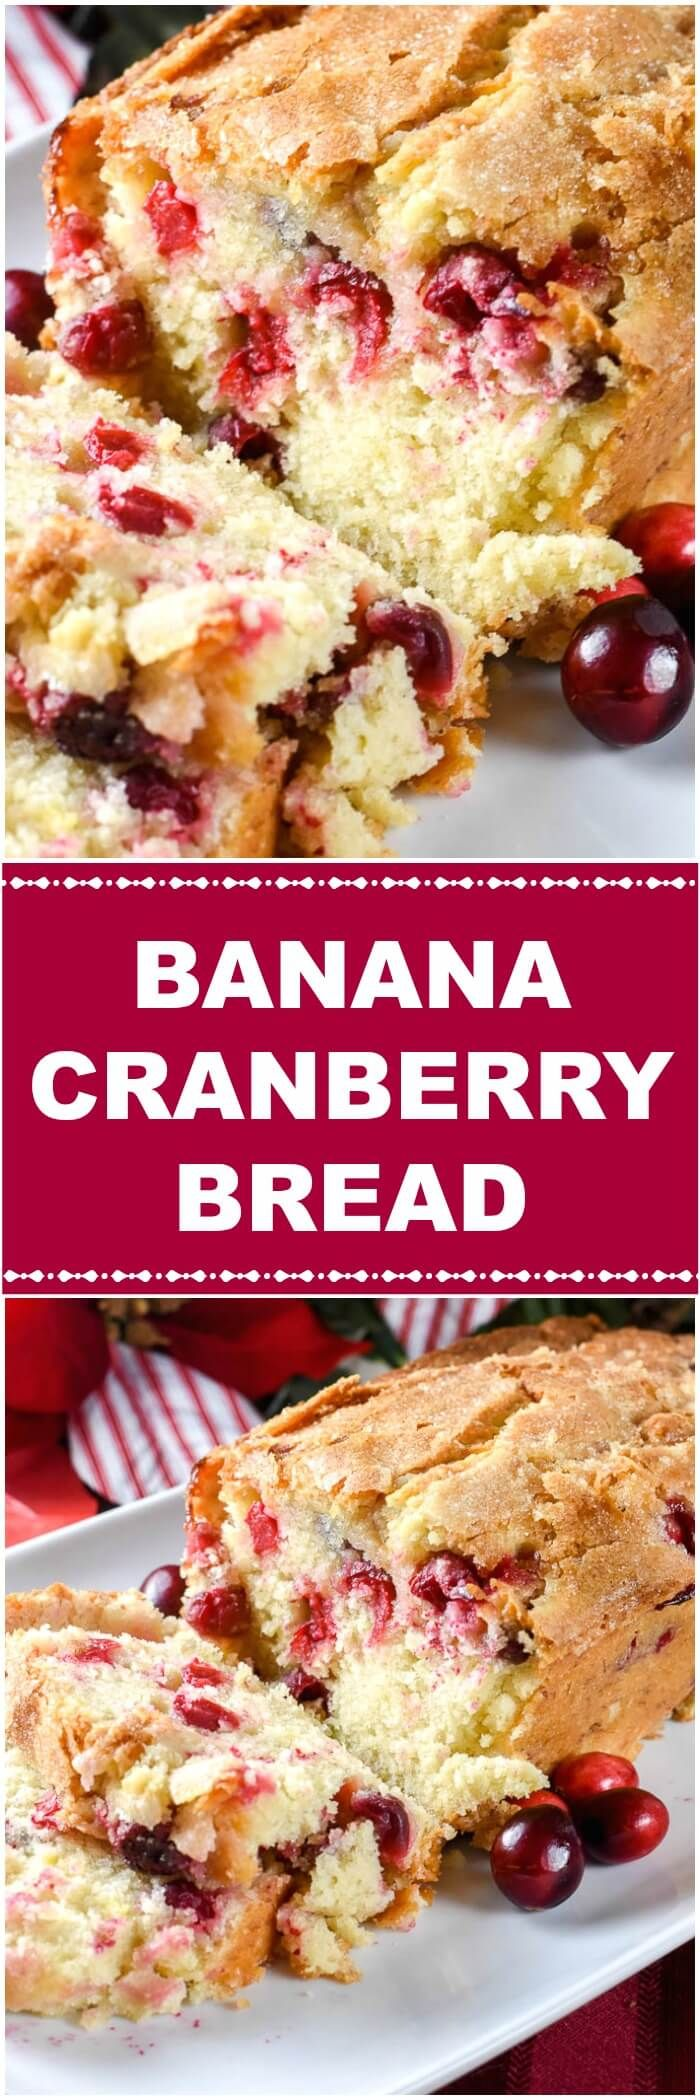 This moist, scrumptious Banana Cranberry Bread adds tangy fresh cranberries for an extra zip to this homemade banana bread.        The addition of fresh cranberries to this homemade Banana Cranberry Bread makes it especially colorful, flavorful, and festive for Christmas and the holidays. via @flavormosaic